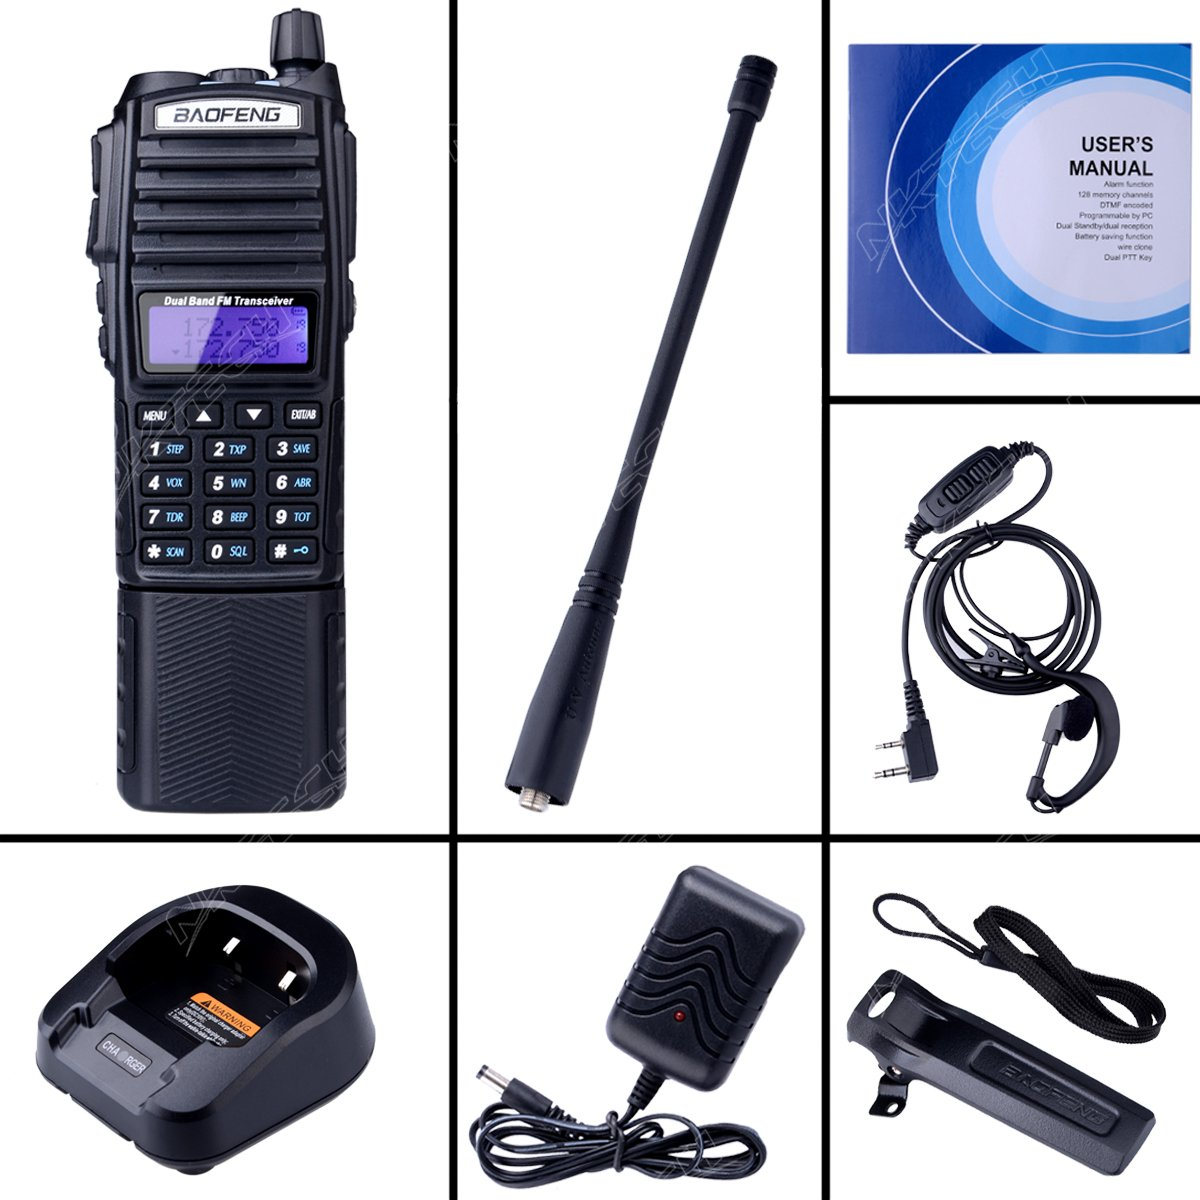 Negro Est/ándar NKTECH BaoFeng UV-82 Tri-Power High Mid Low 8W 4W 1W UV Cross Band VHF UHF 136-174//400-520MHz Transceptor de Jam/ón Walkie Talkie Power by BL-8